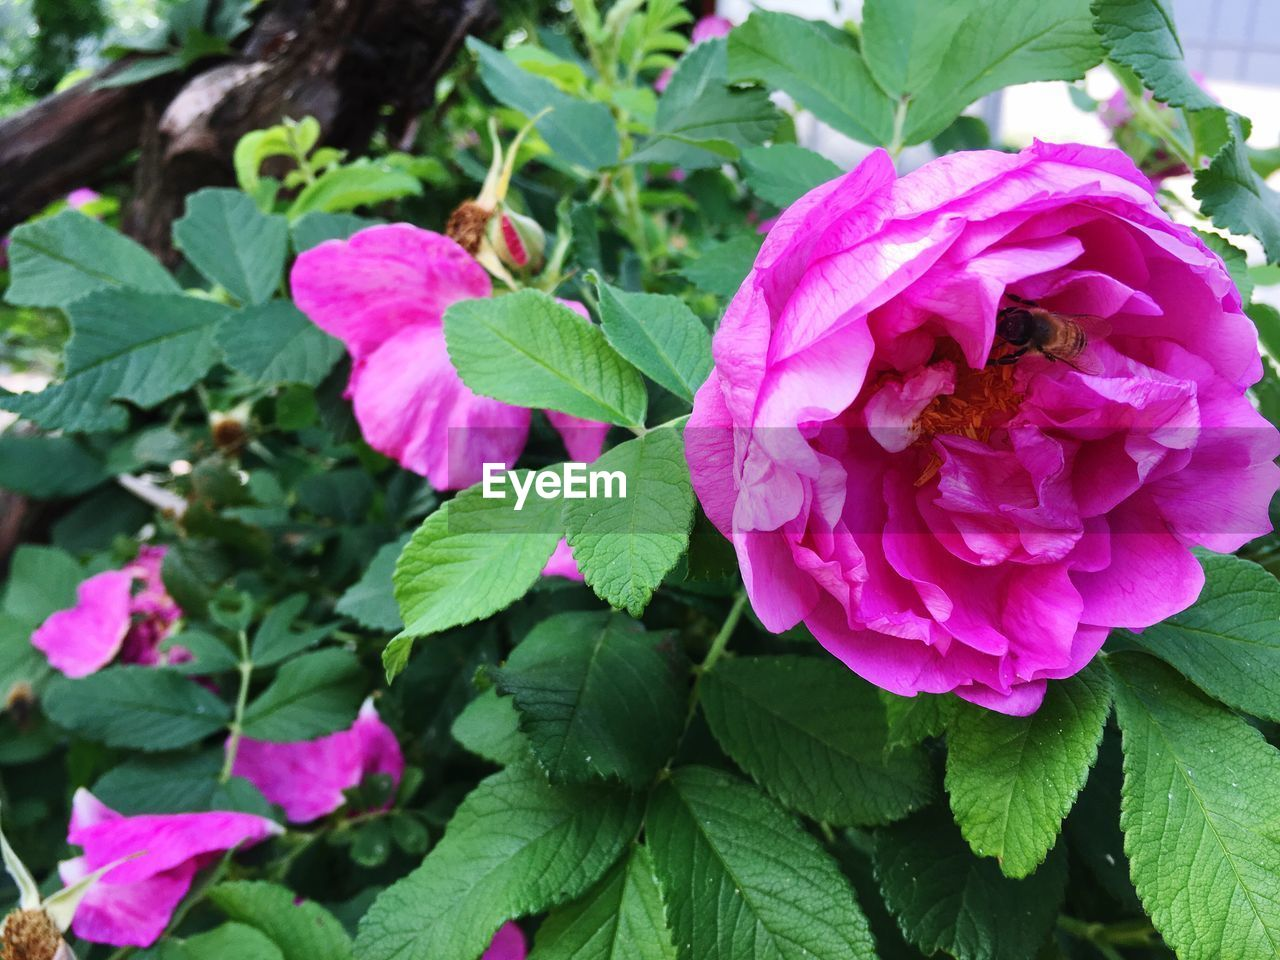 flowering plant, flower, plant, leaf, plant part, beauty in nature, petal, growth, freshness, pink color, fragility, vulnerability, flower head, close-up, inflorescence, nature, green color, day, no people, rose, outdoors, purple